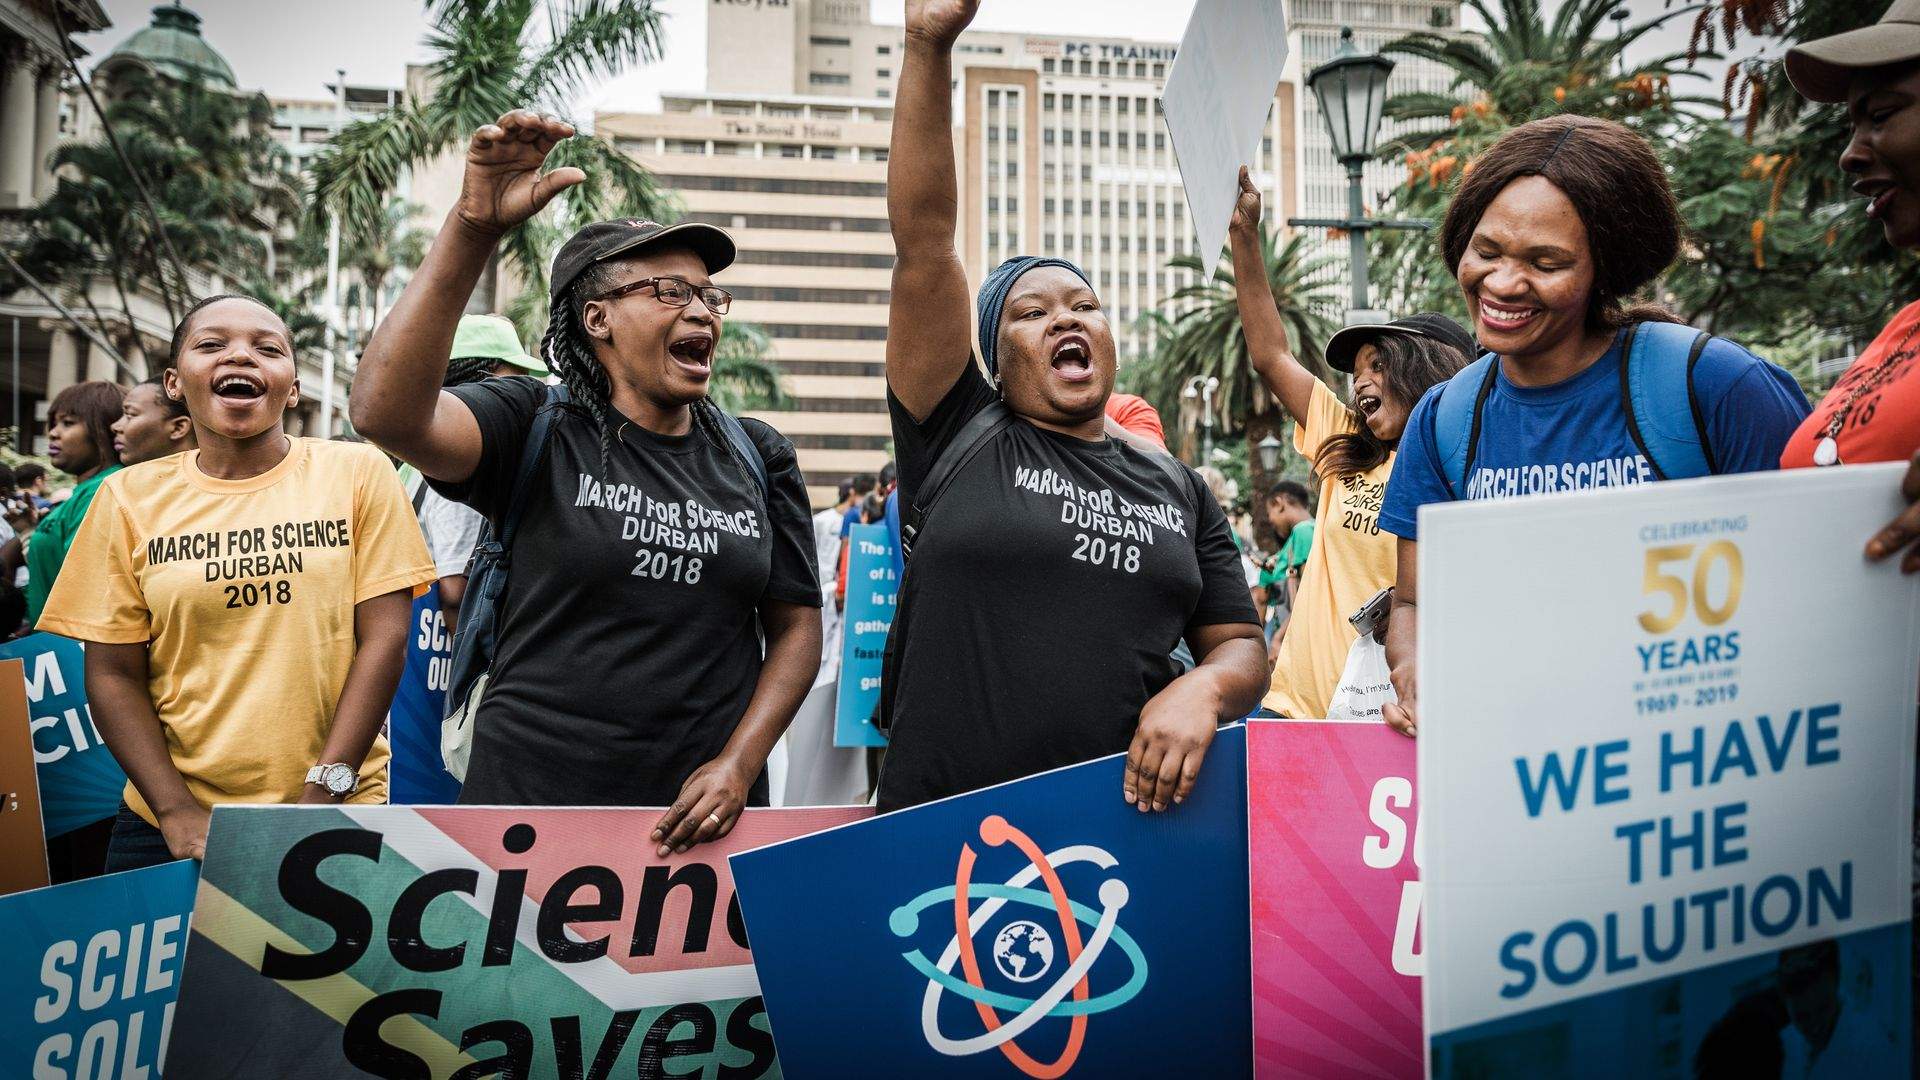 People holding banners shout slogans during the 'March for Science' in Durban